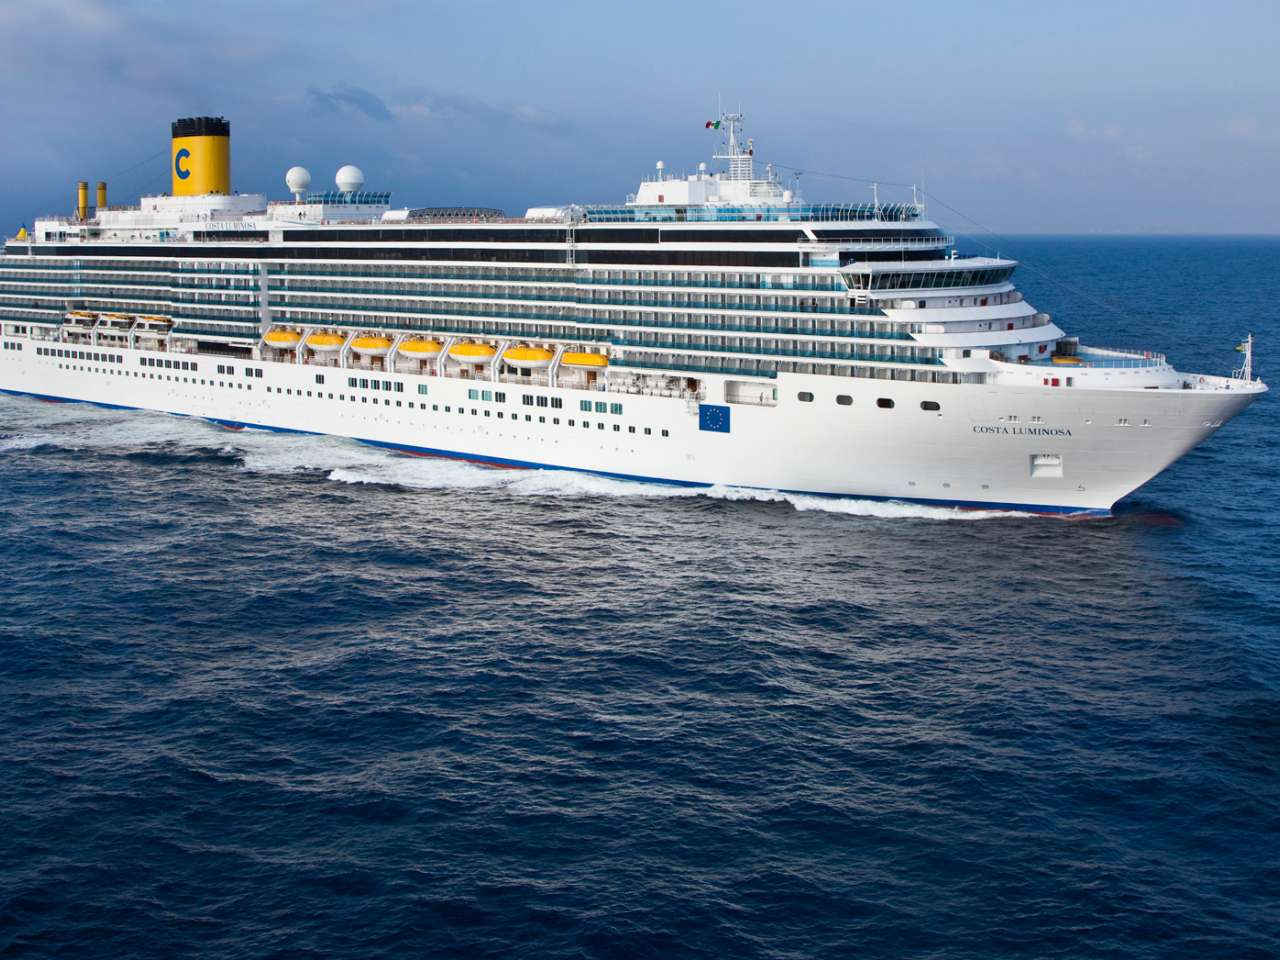 Costa luminosa deckplan kabinen plan costa kreuzfahrten for Deckplan costa diadema